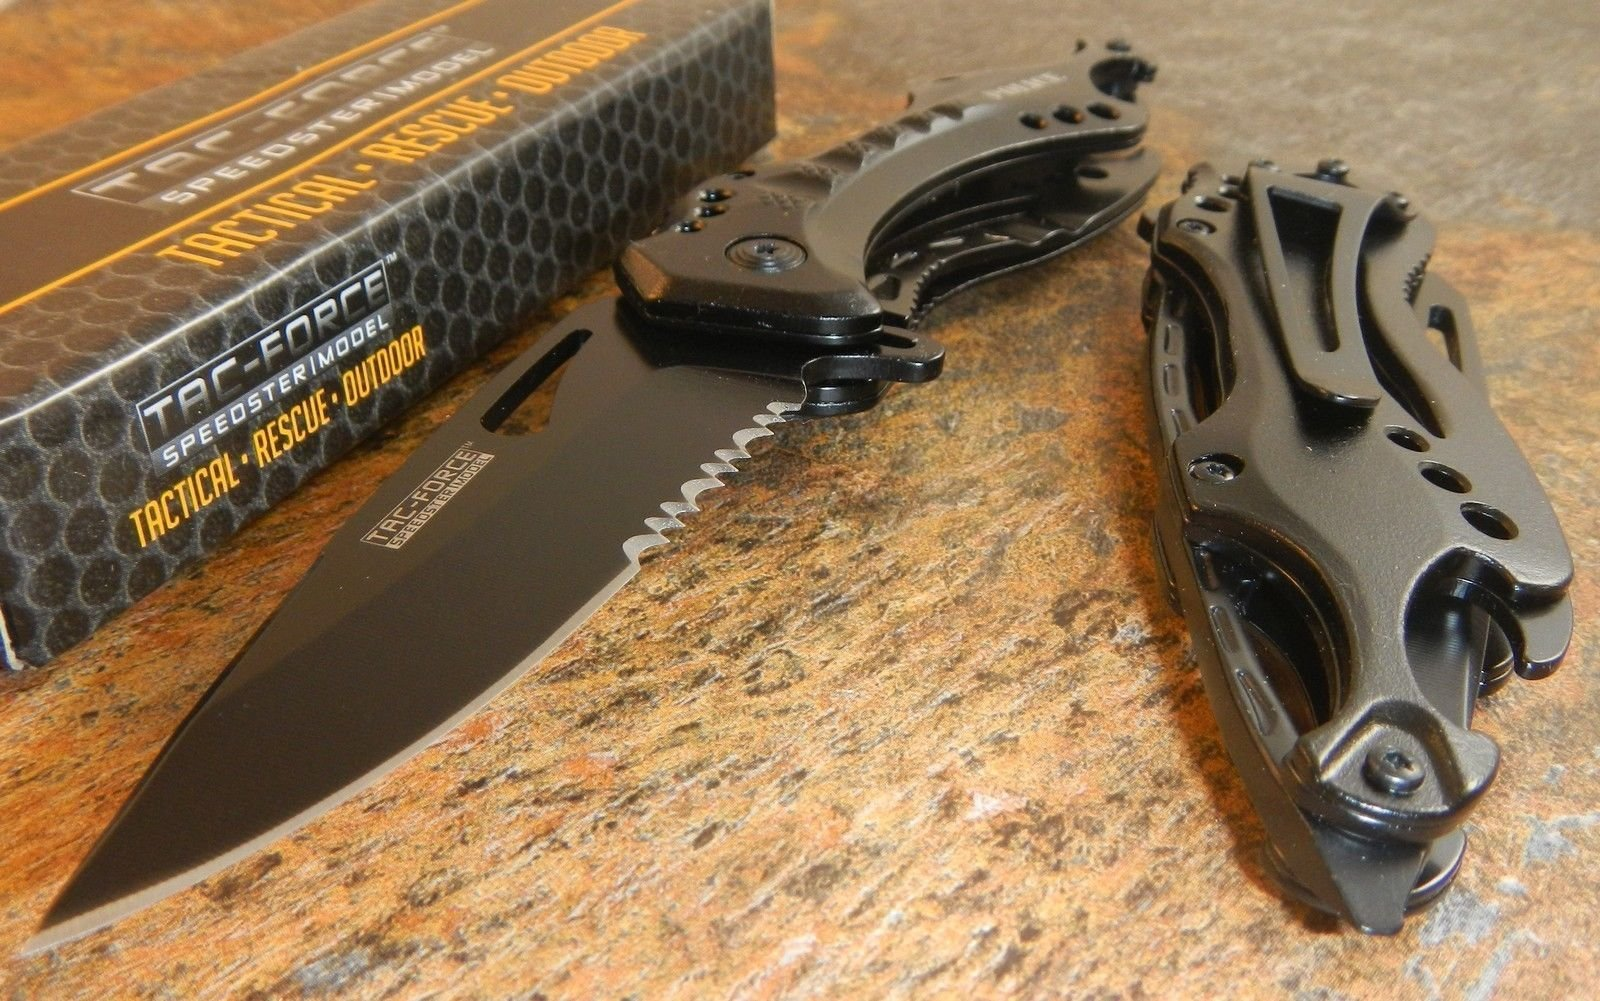 Tac Force Spring Assisted Open Police Black Bottle Opener